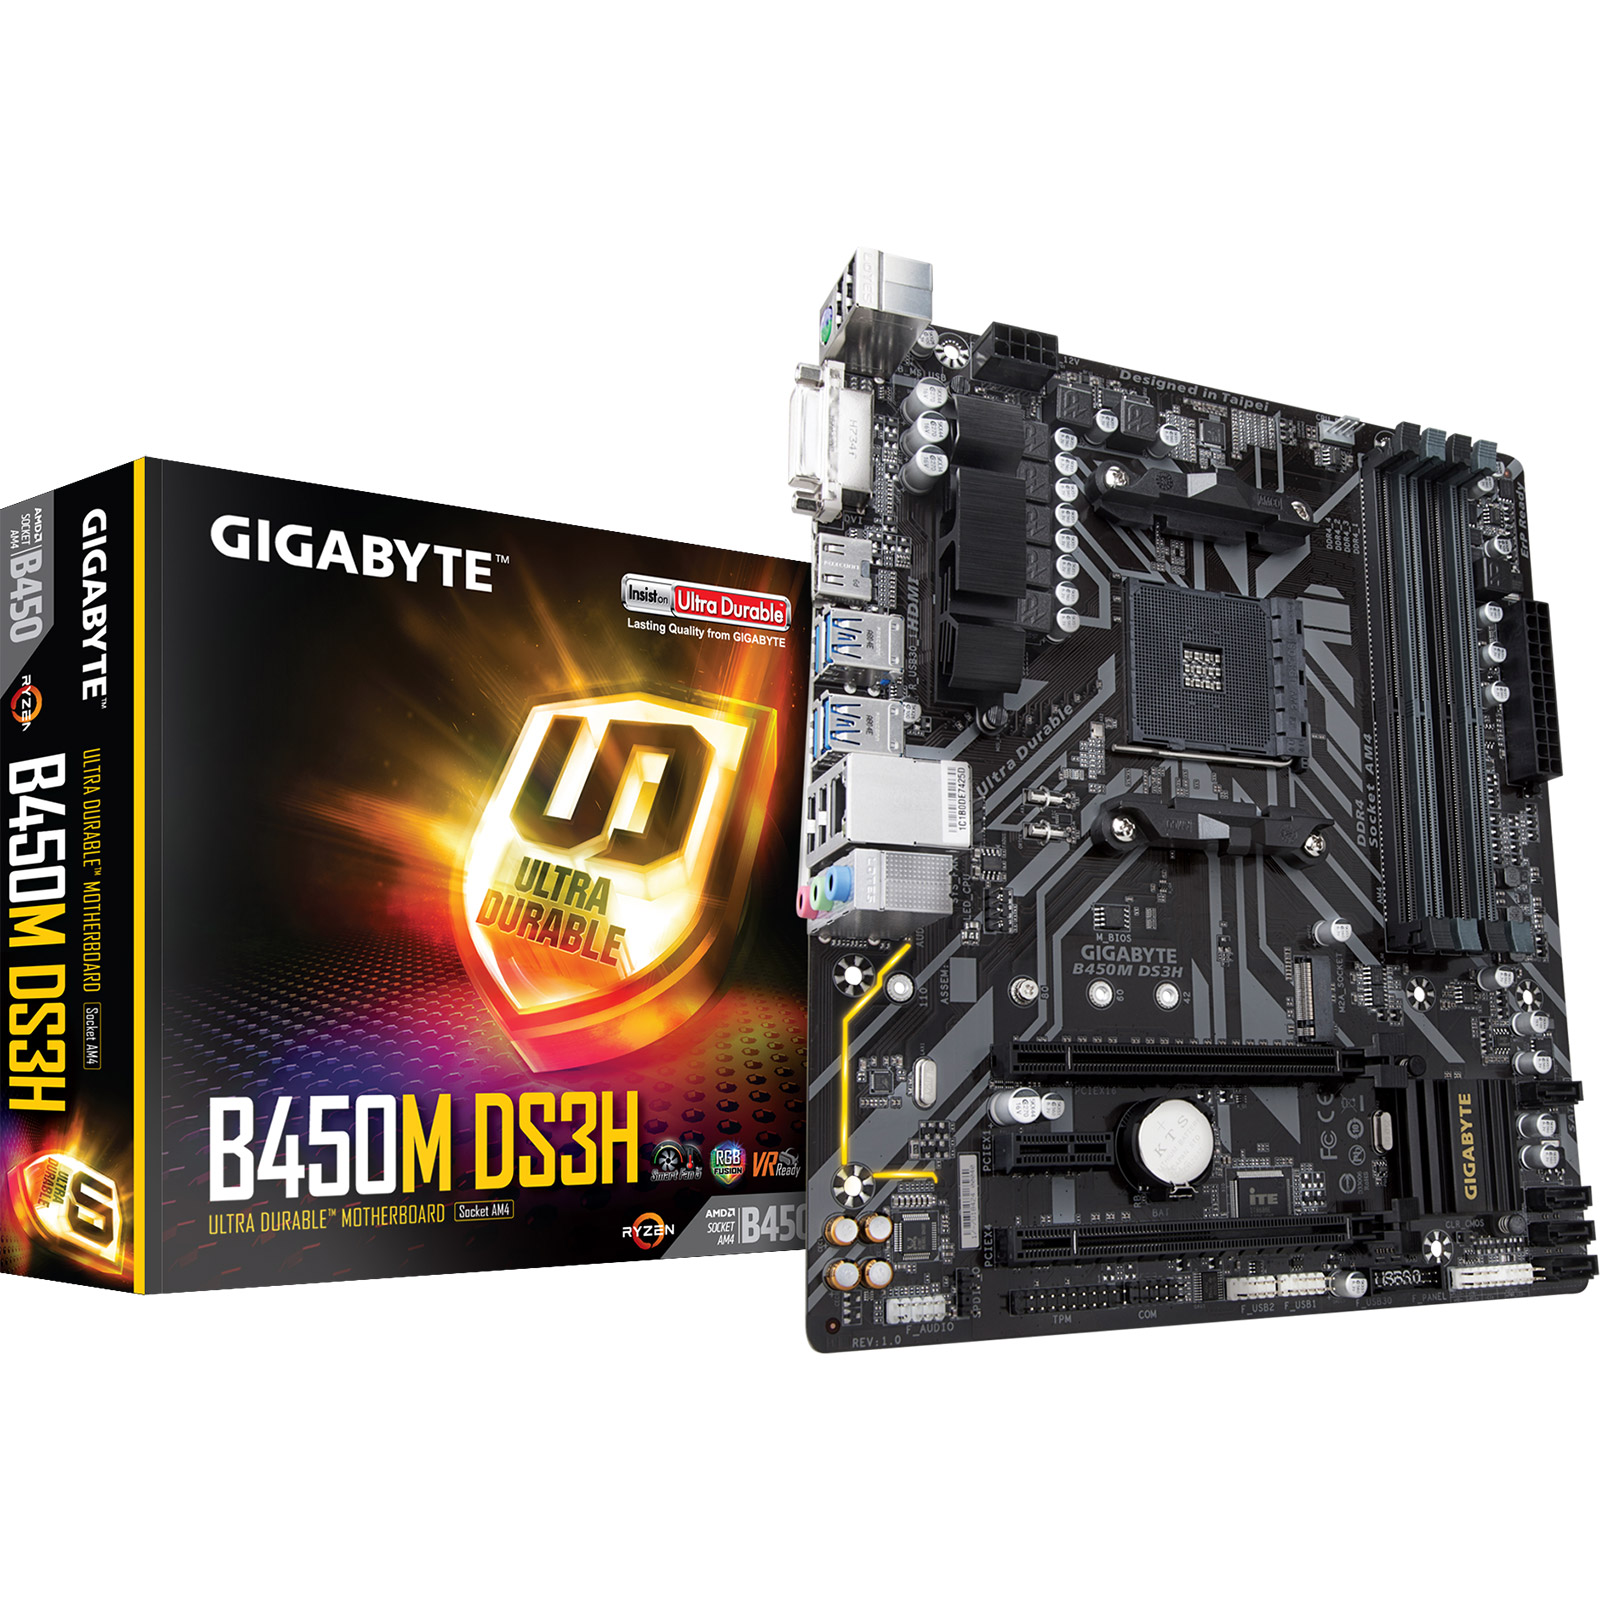 Carte mère Gigabyte B450M-DS3H Carte mère micro-ATX Socket AM4 AMD B450 - 4x DDR4 - SATA 6Gb/s + M.2 - USB 3.0 - 1x PCI-Express 3.0 16x